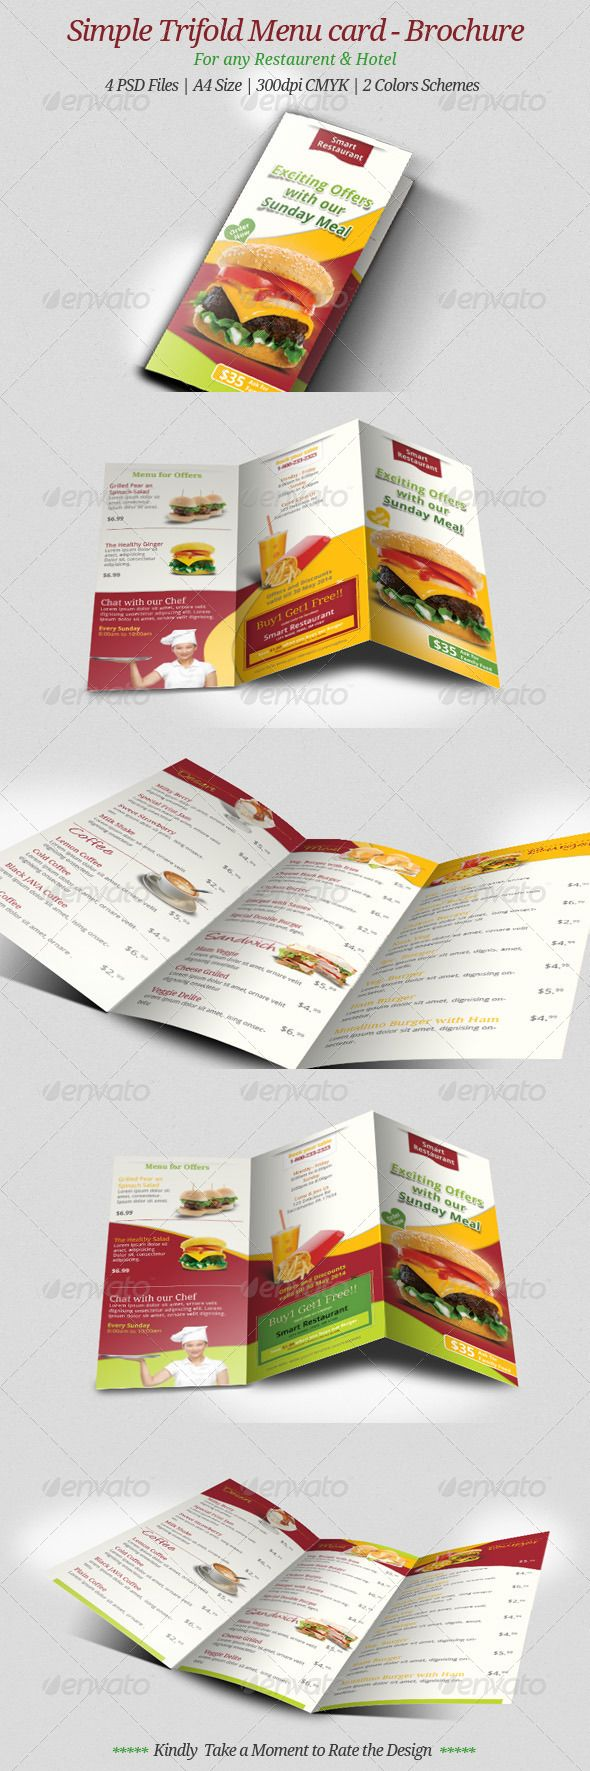 1867 best food restaurant menu flyre templates images on simple trifold menu card brochure pronofoot35fo Choice Image